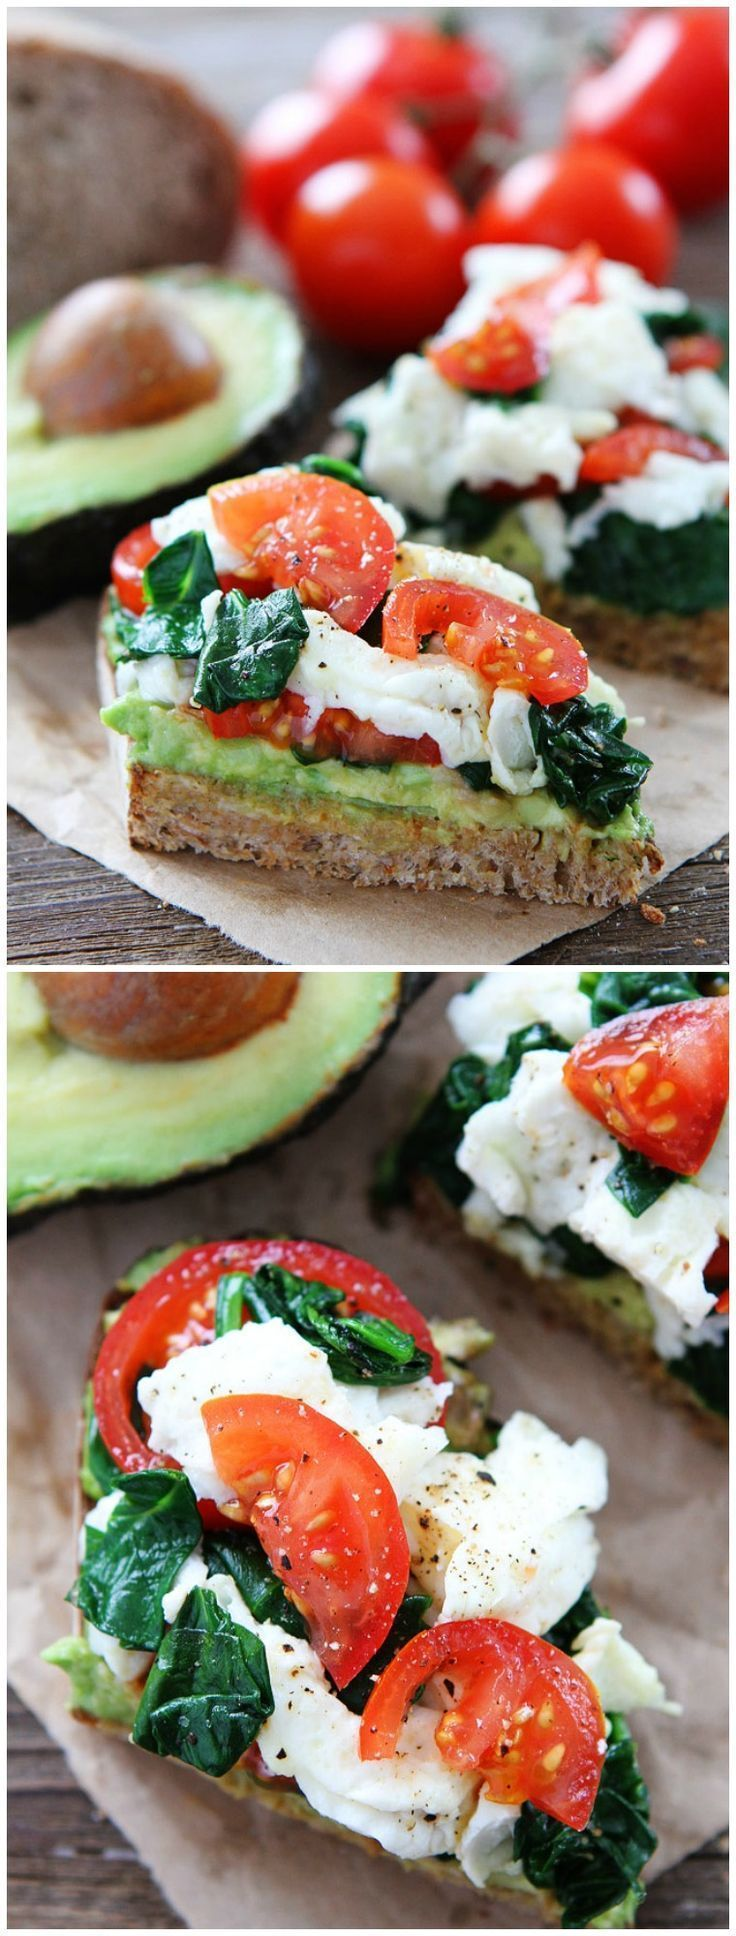 Avocado Toast with Eggs, Spinach, and Tomatoes !